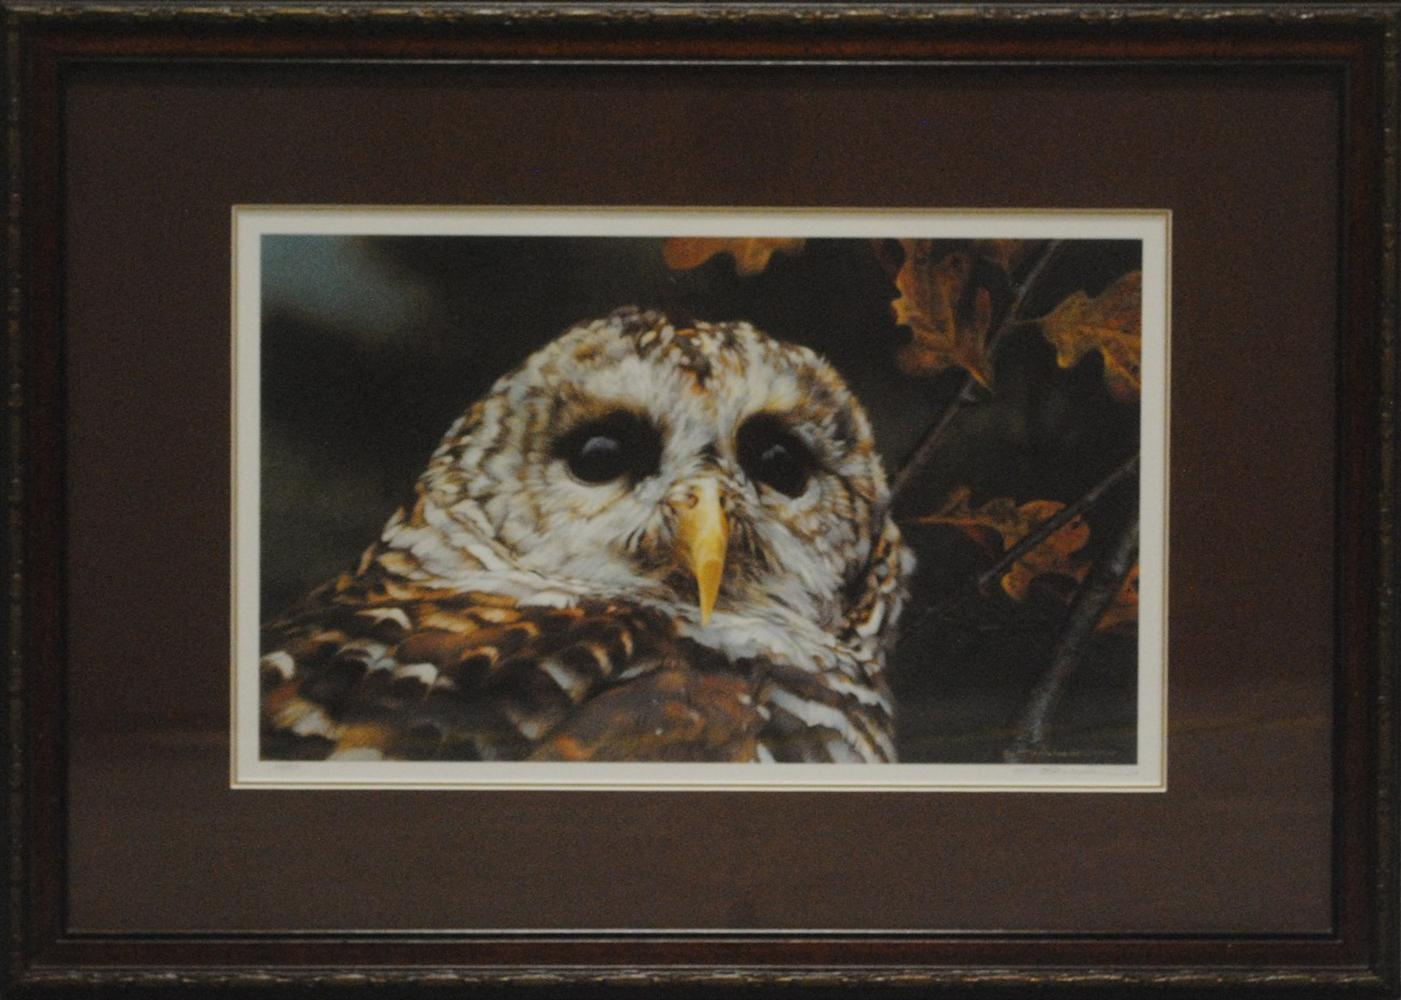 """Carl Brenders' """"Up Close- Barred Owl"""" Limited Edition Print"""